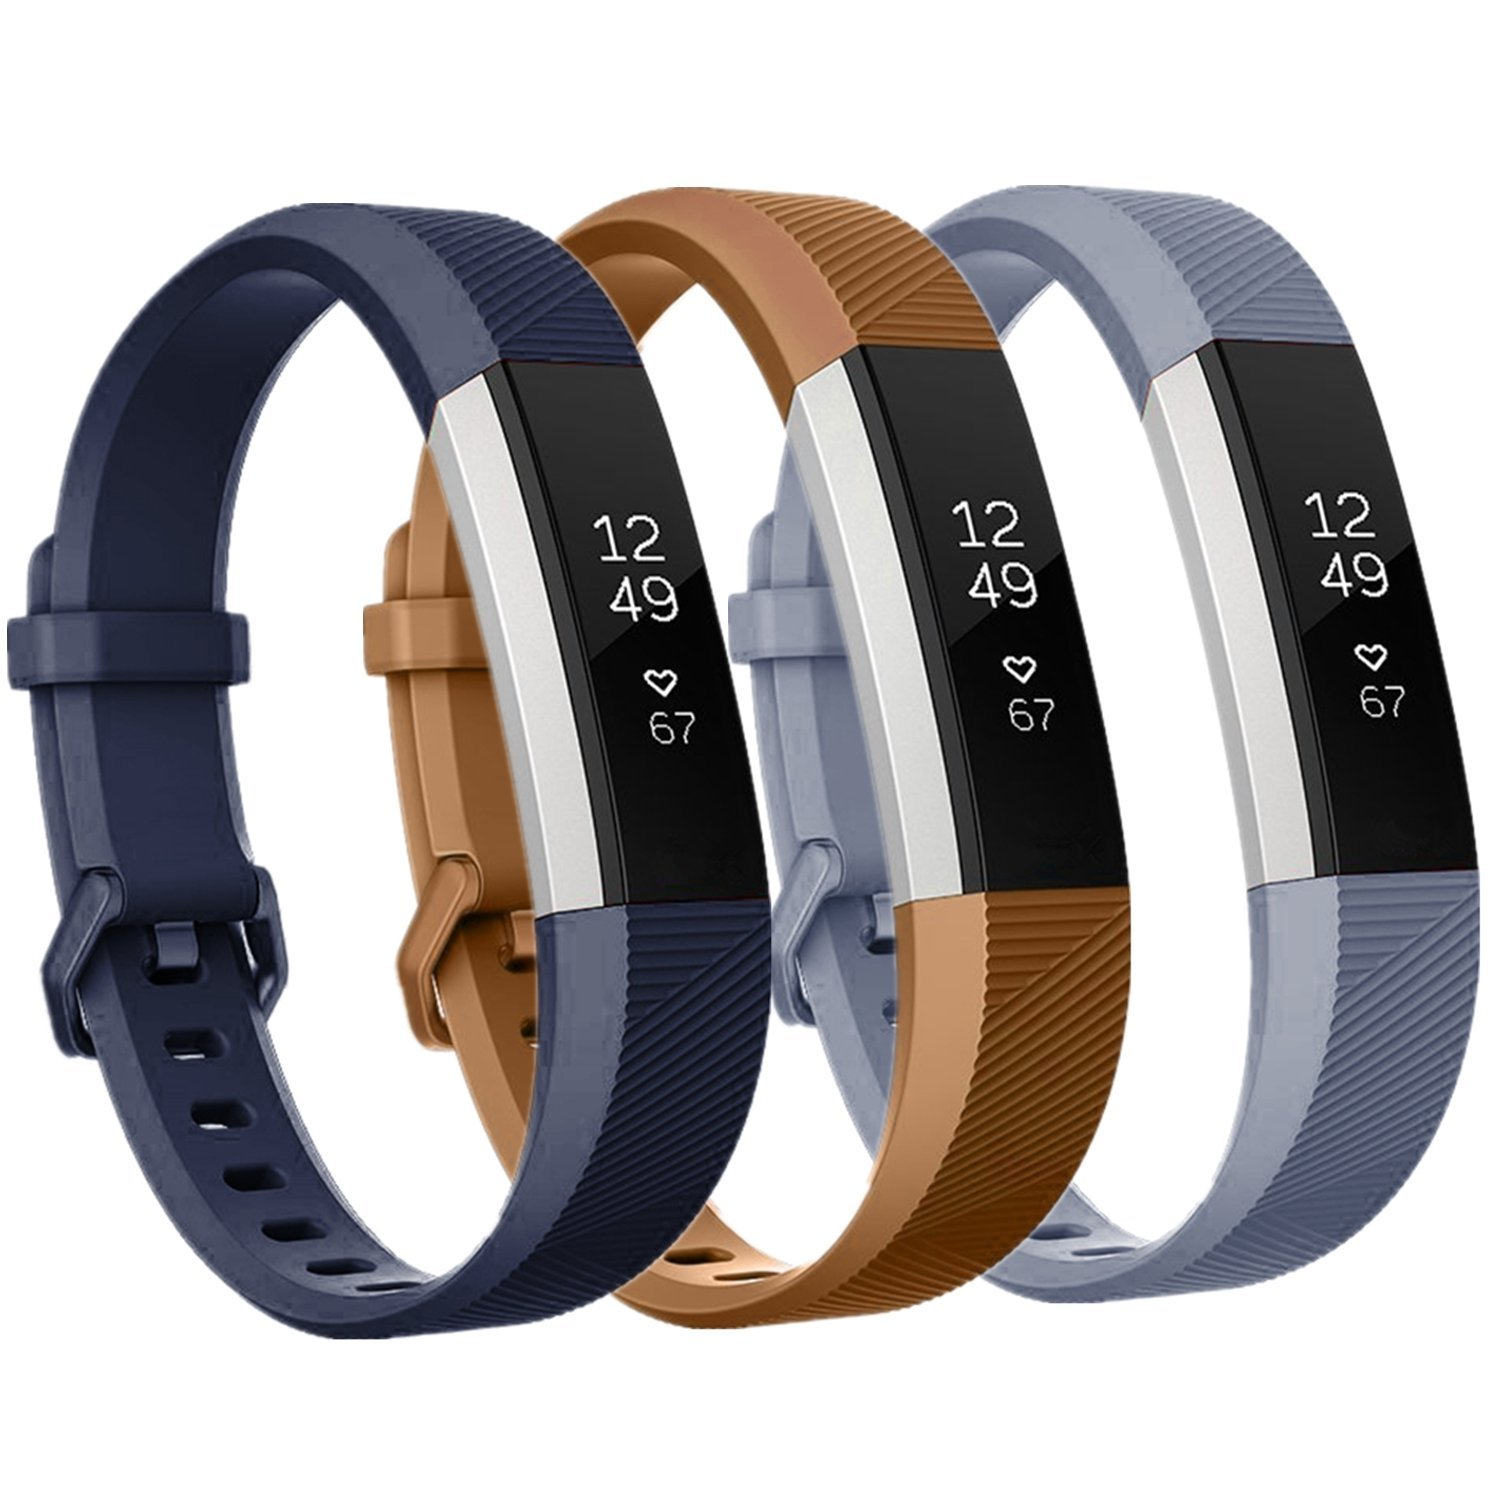 For Fitbit Alta HR Band and Fitbit Alta Band Strap Wristband(3Pack) by